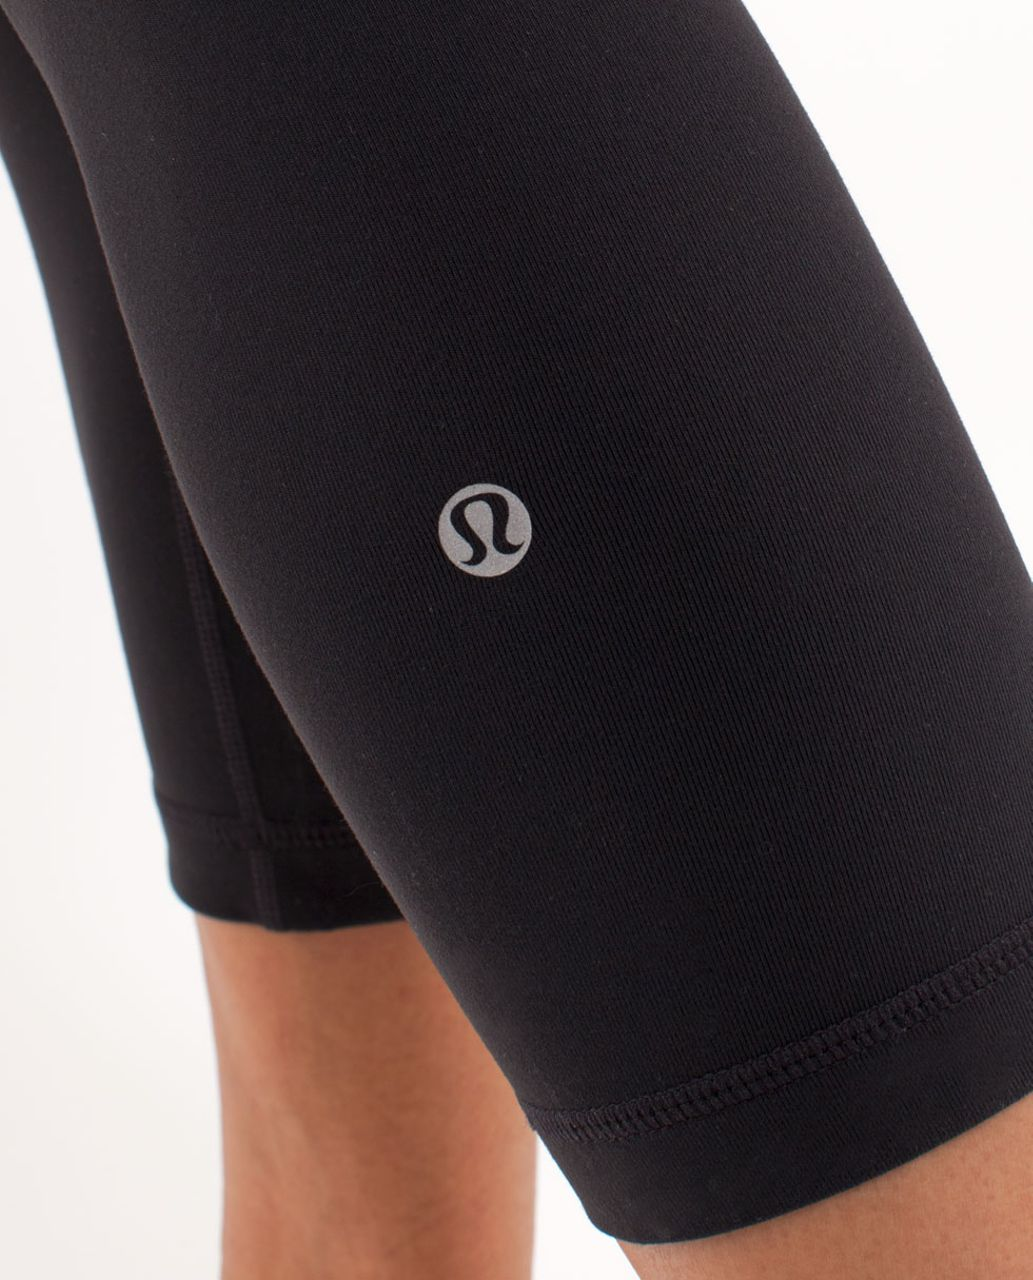 Lululemon Astro Wunder Under Crop - Black